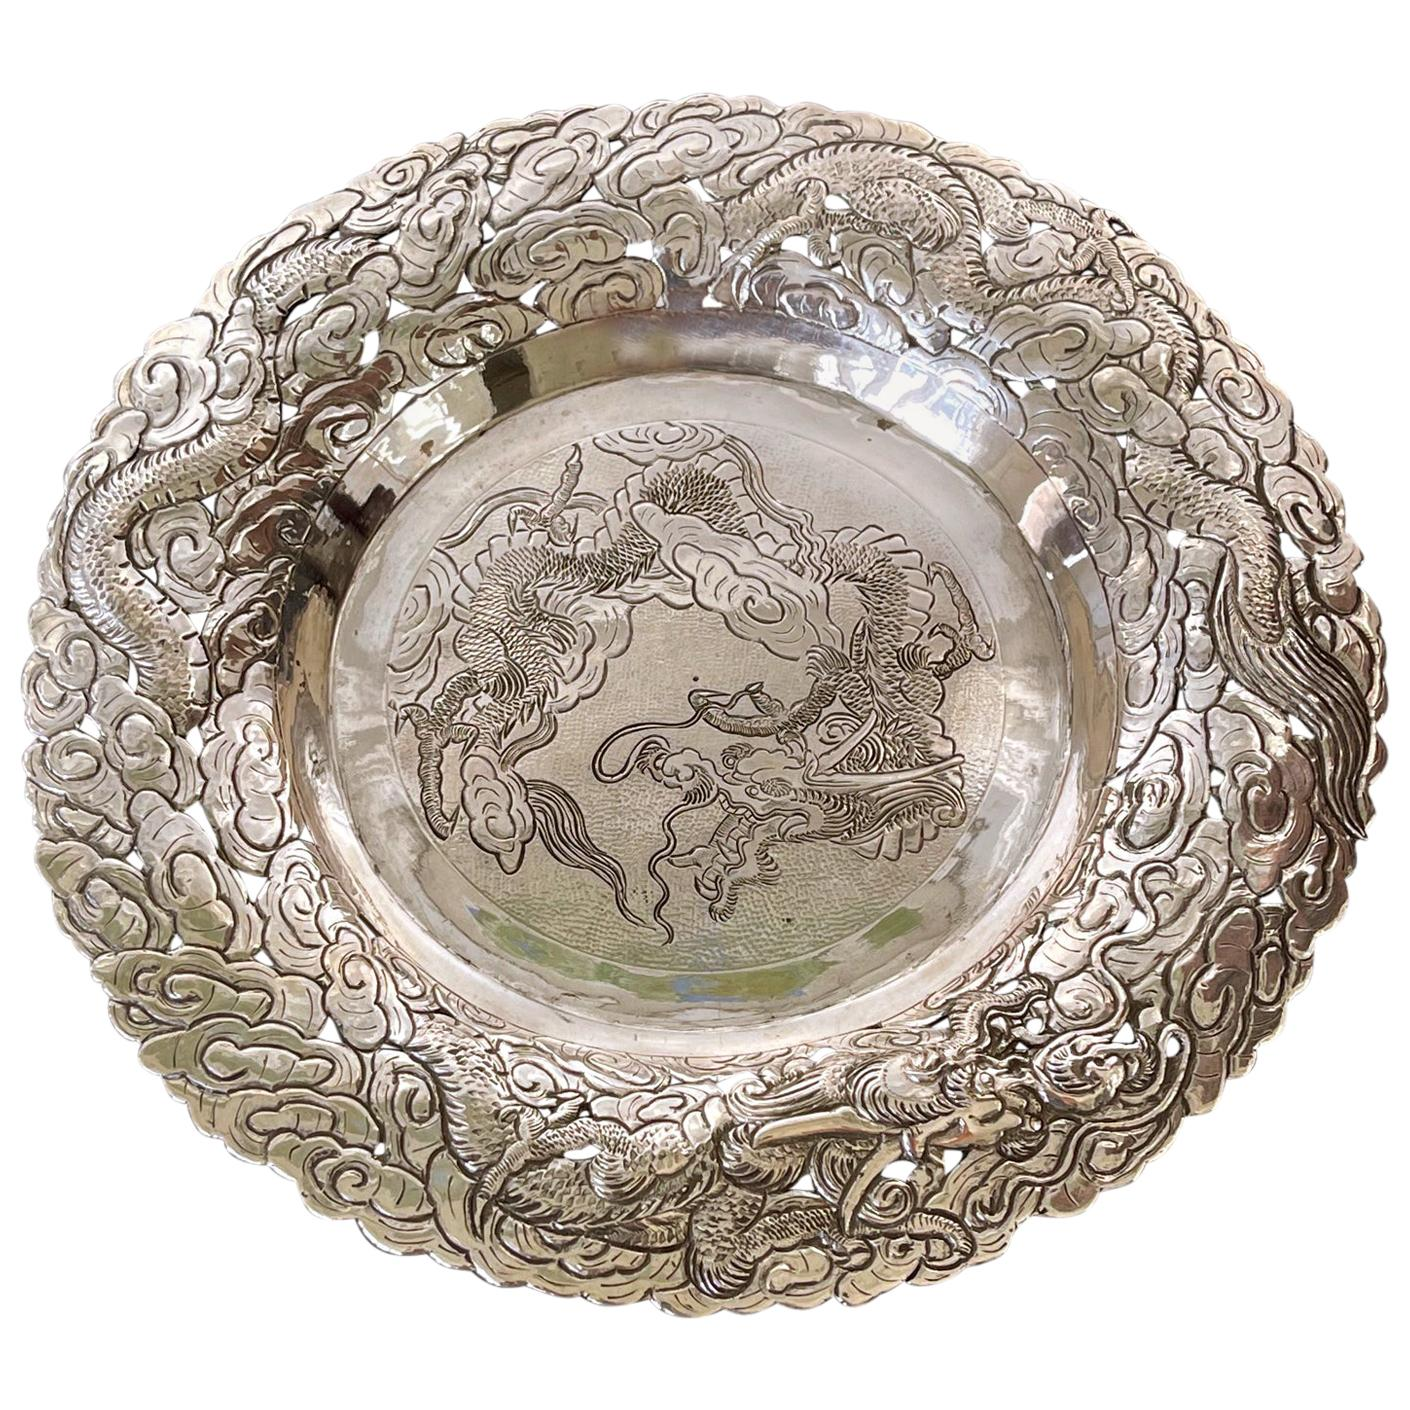 Chinese Export Silver Dragon Serving Tray